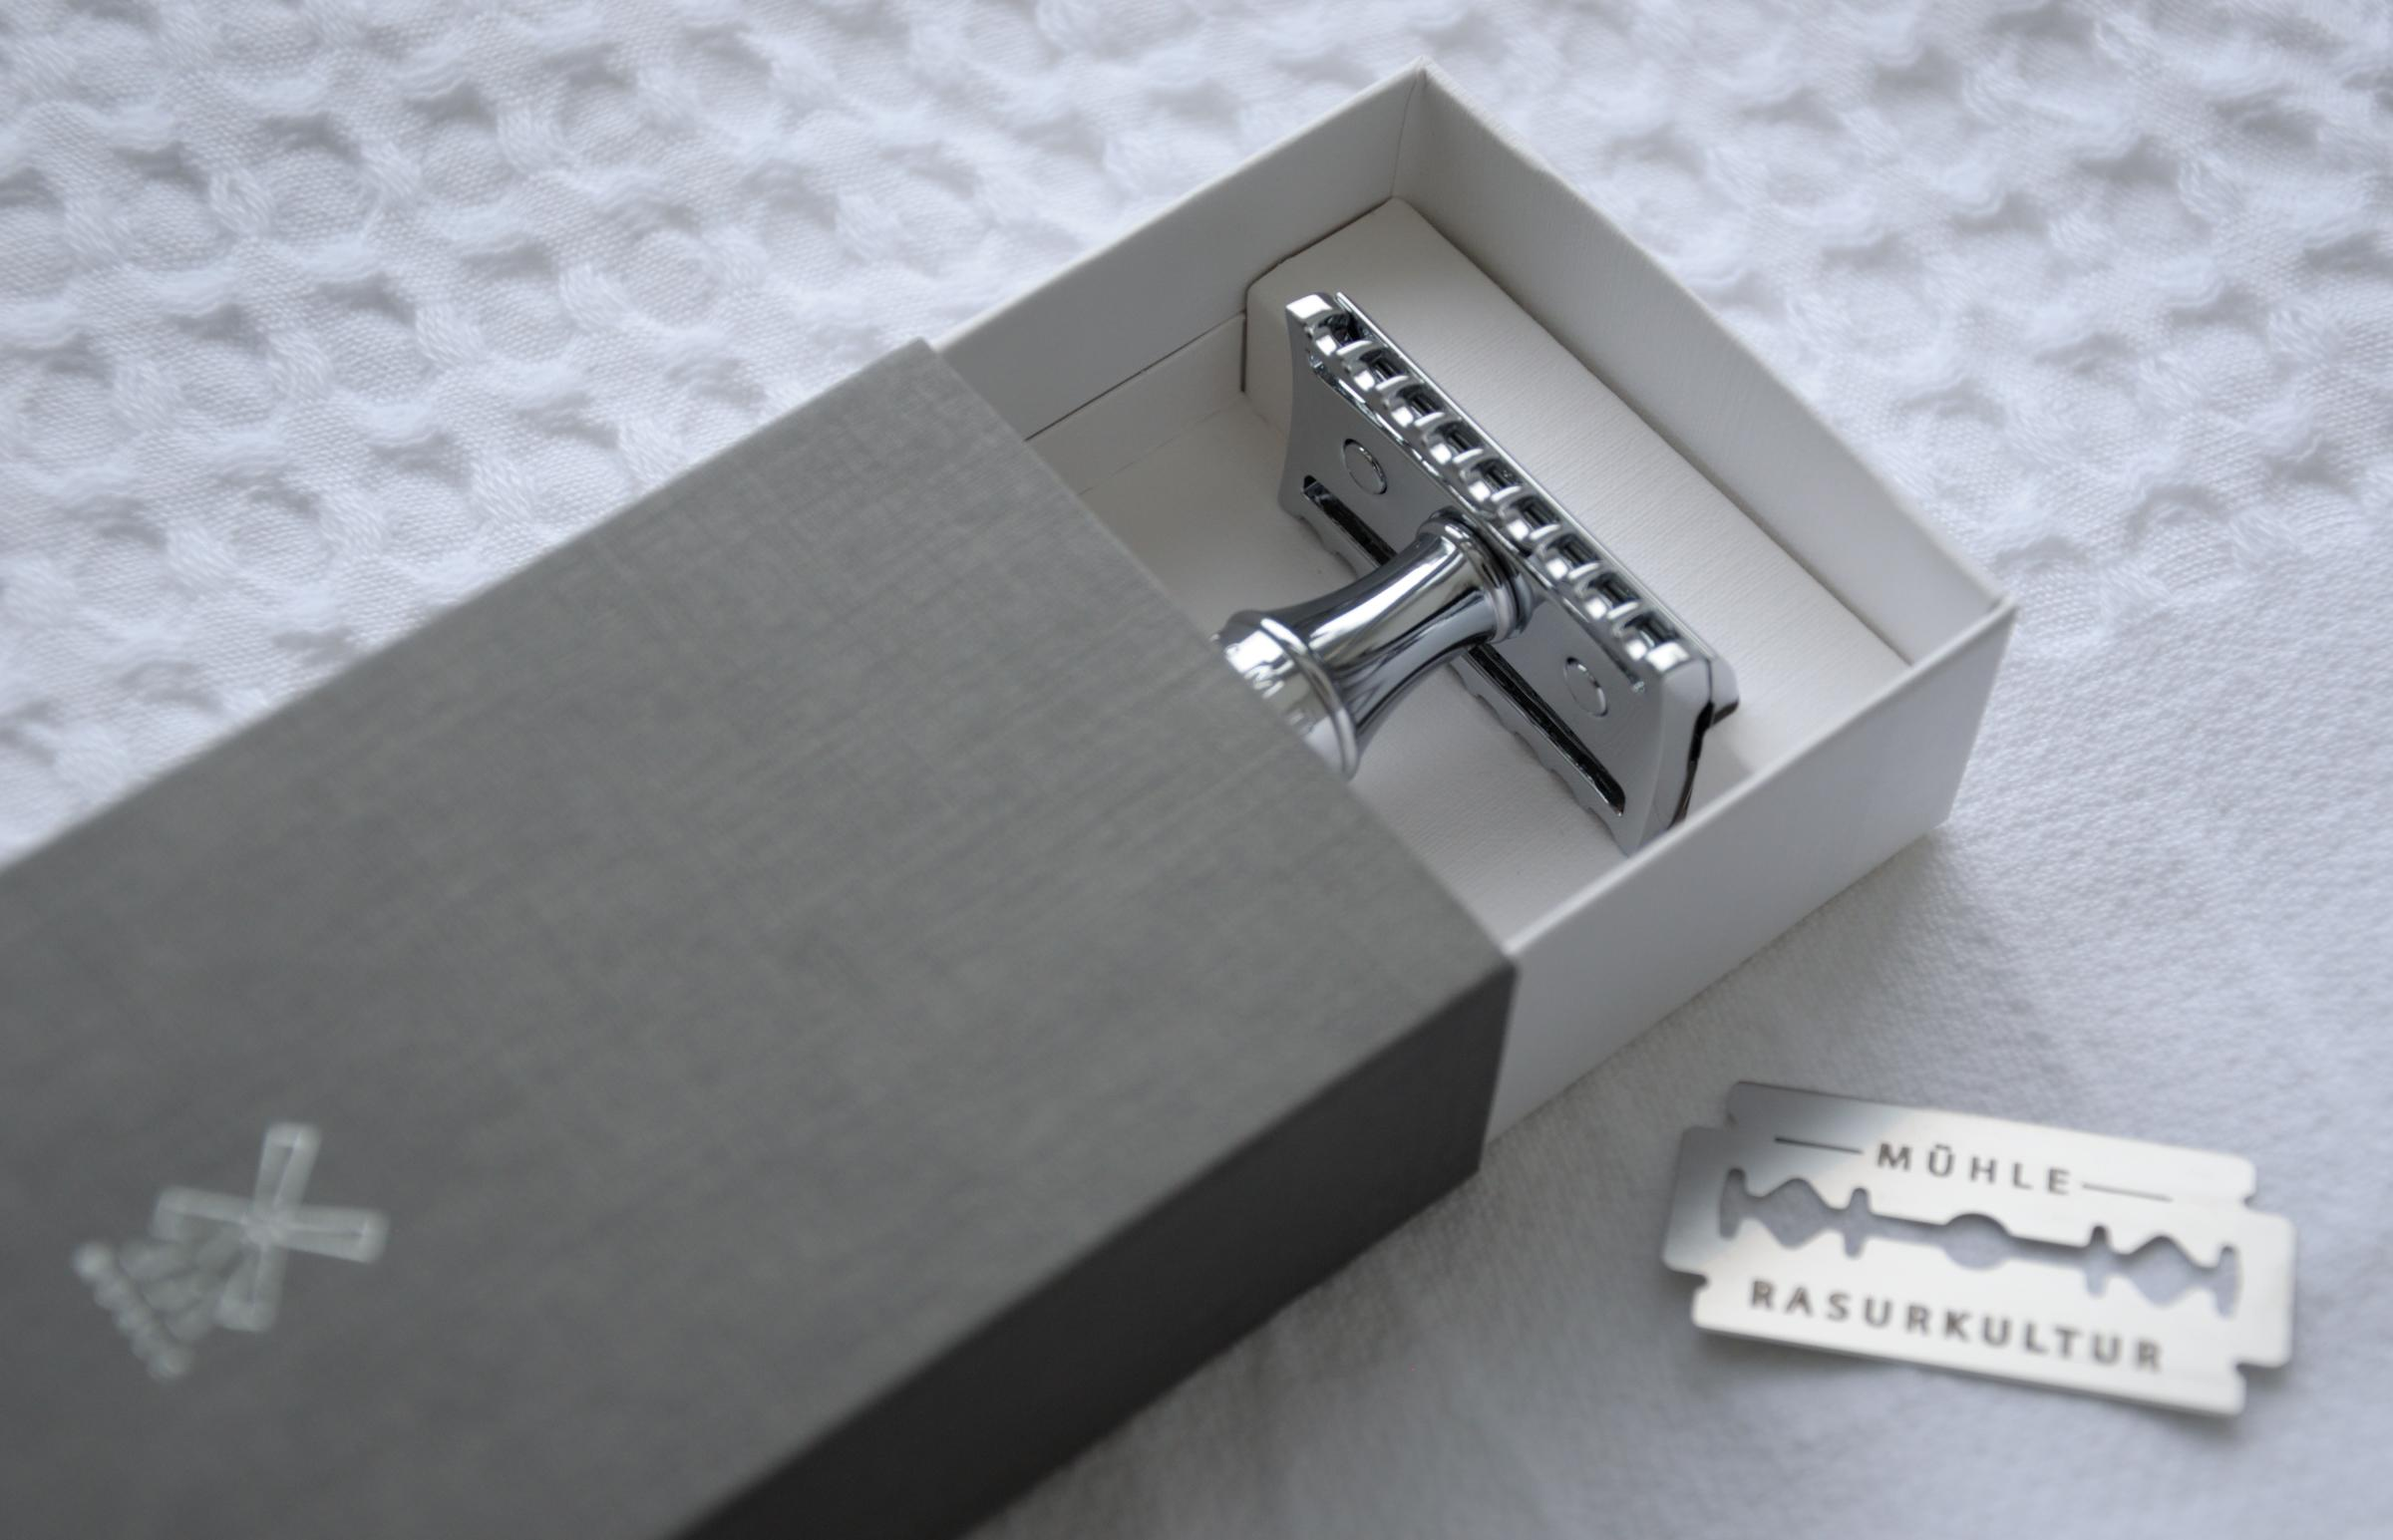 MÜHLE TRADITIONAL R41 Open Comb Razor and Towel, Zero Waste Packaging